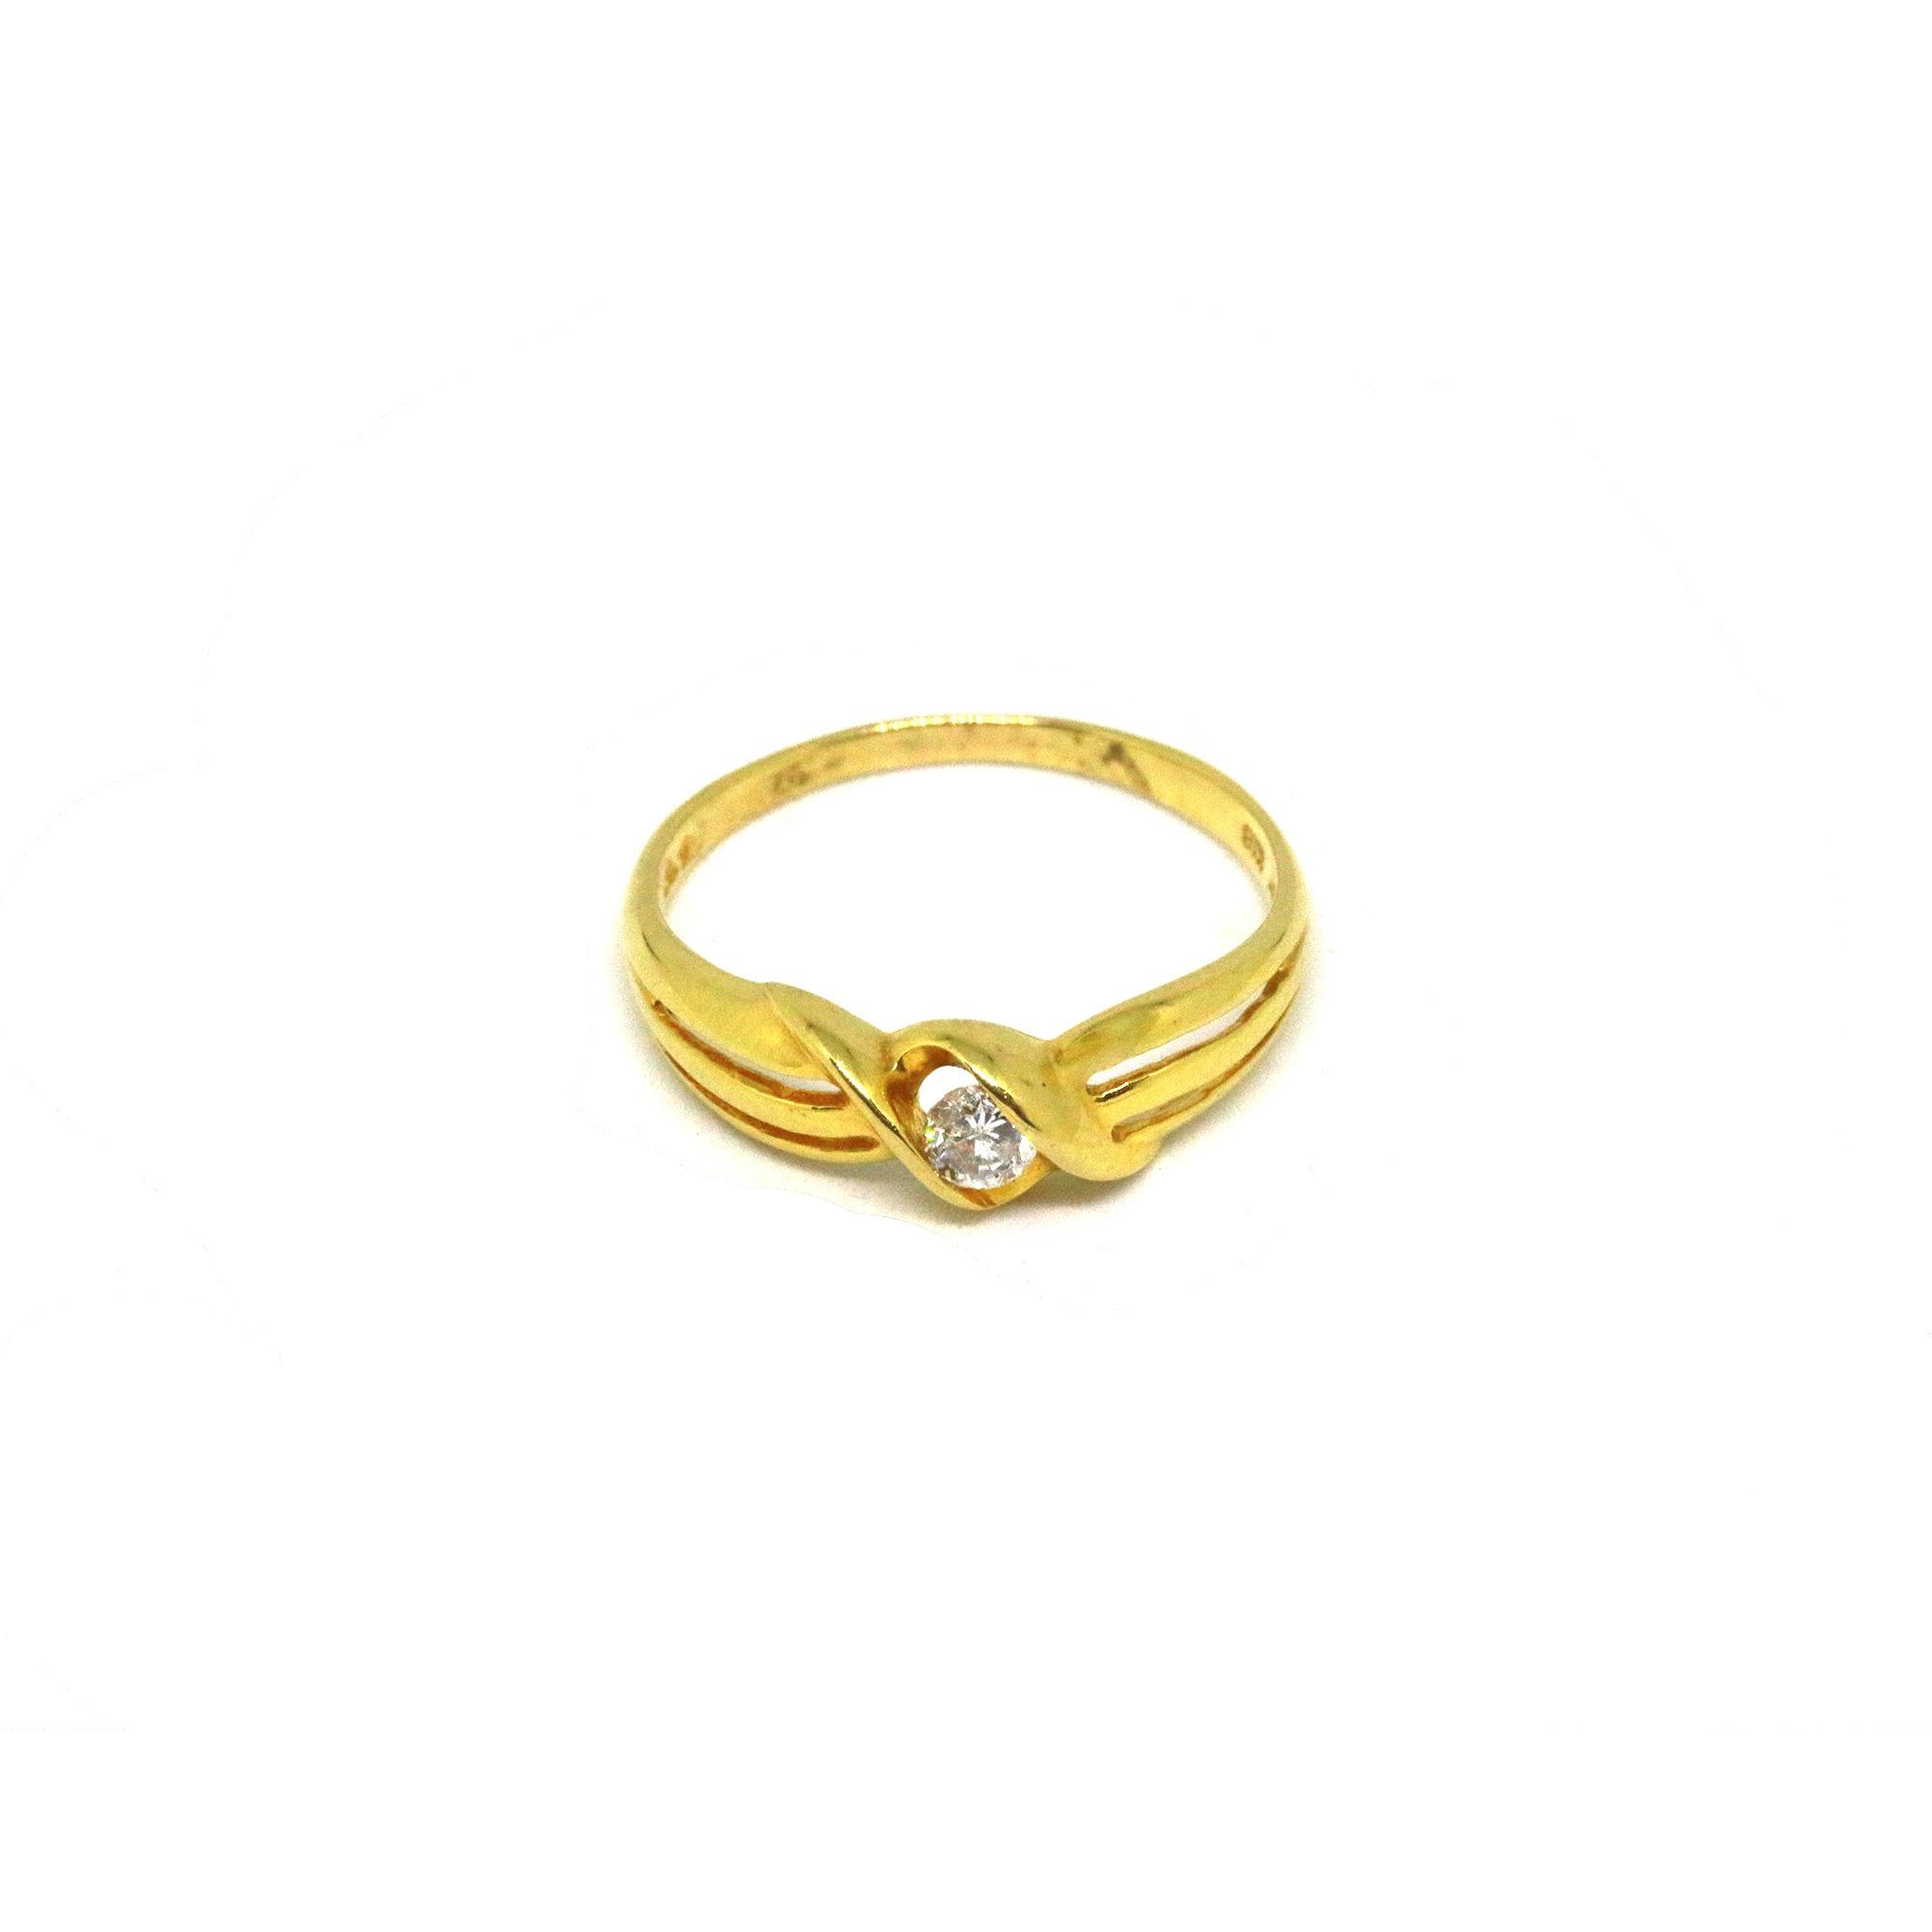 band rings plain bandring sizes wedding gold yellow new solid ring product engagement